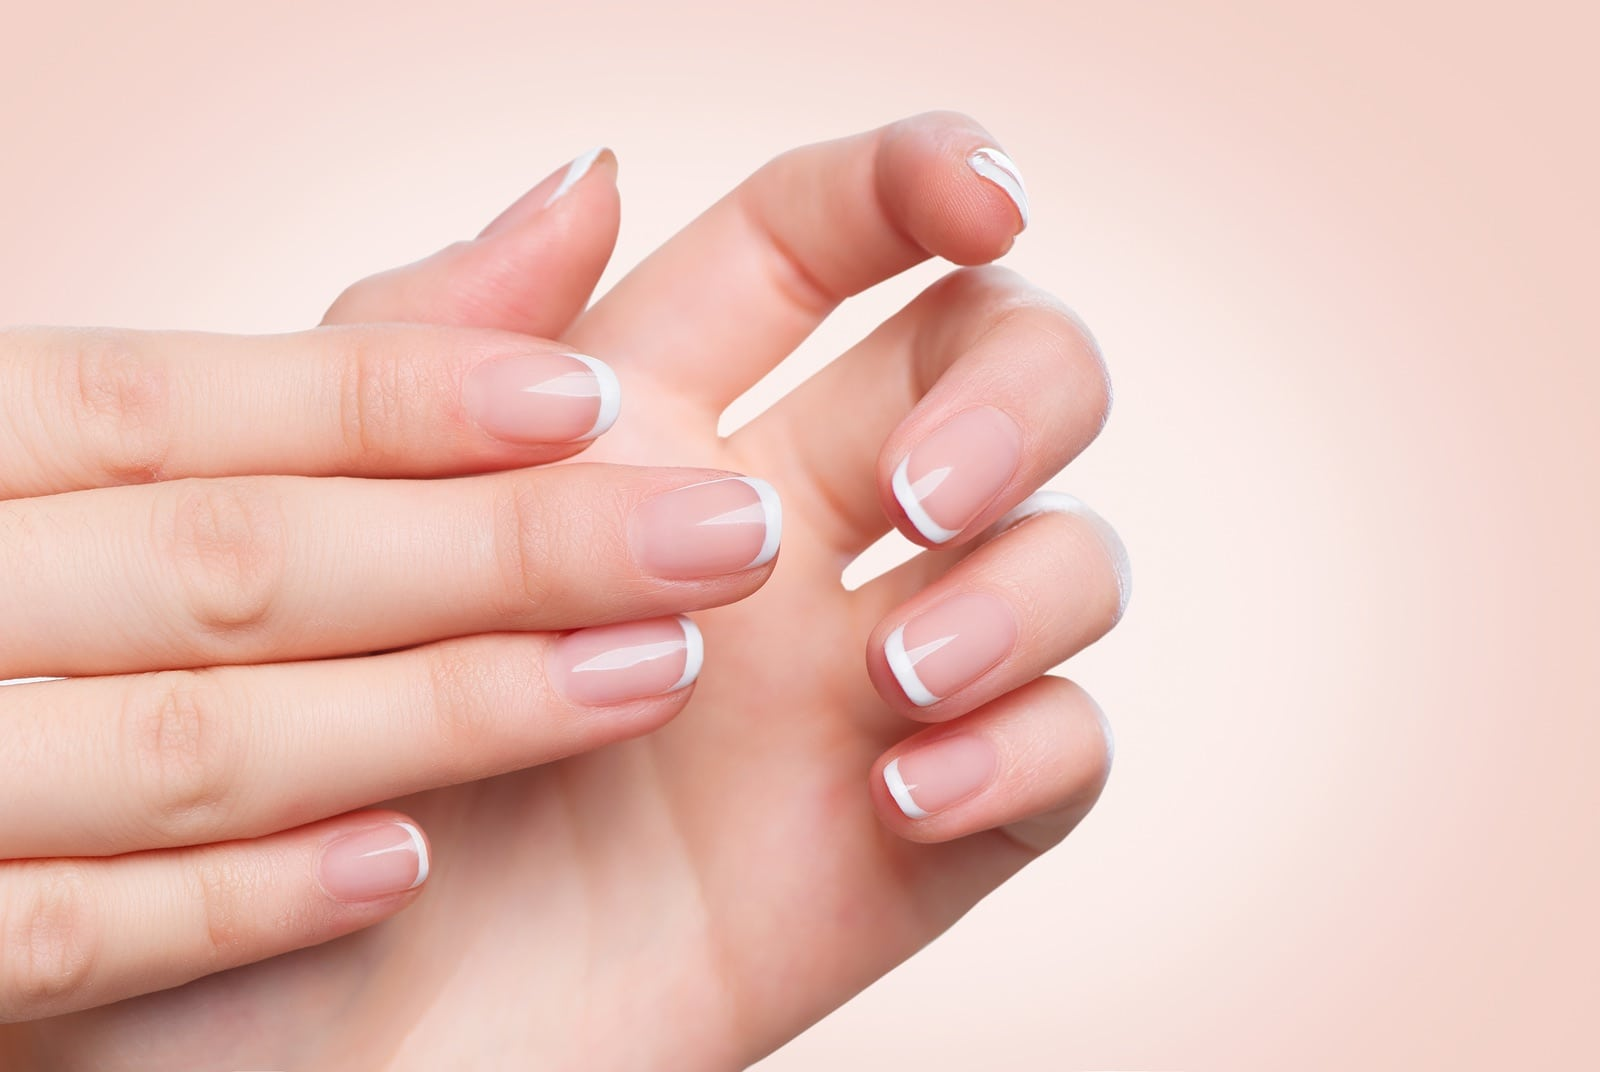 10 TIPS FOR BEAUTIFUL HANDS AND NAILS  LivOliv Cosmetics